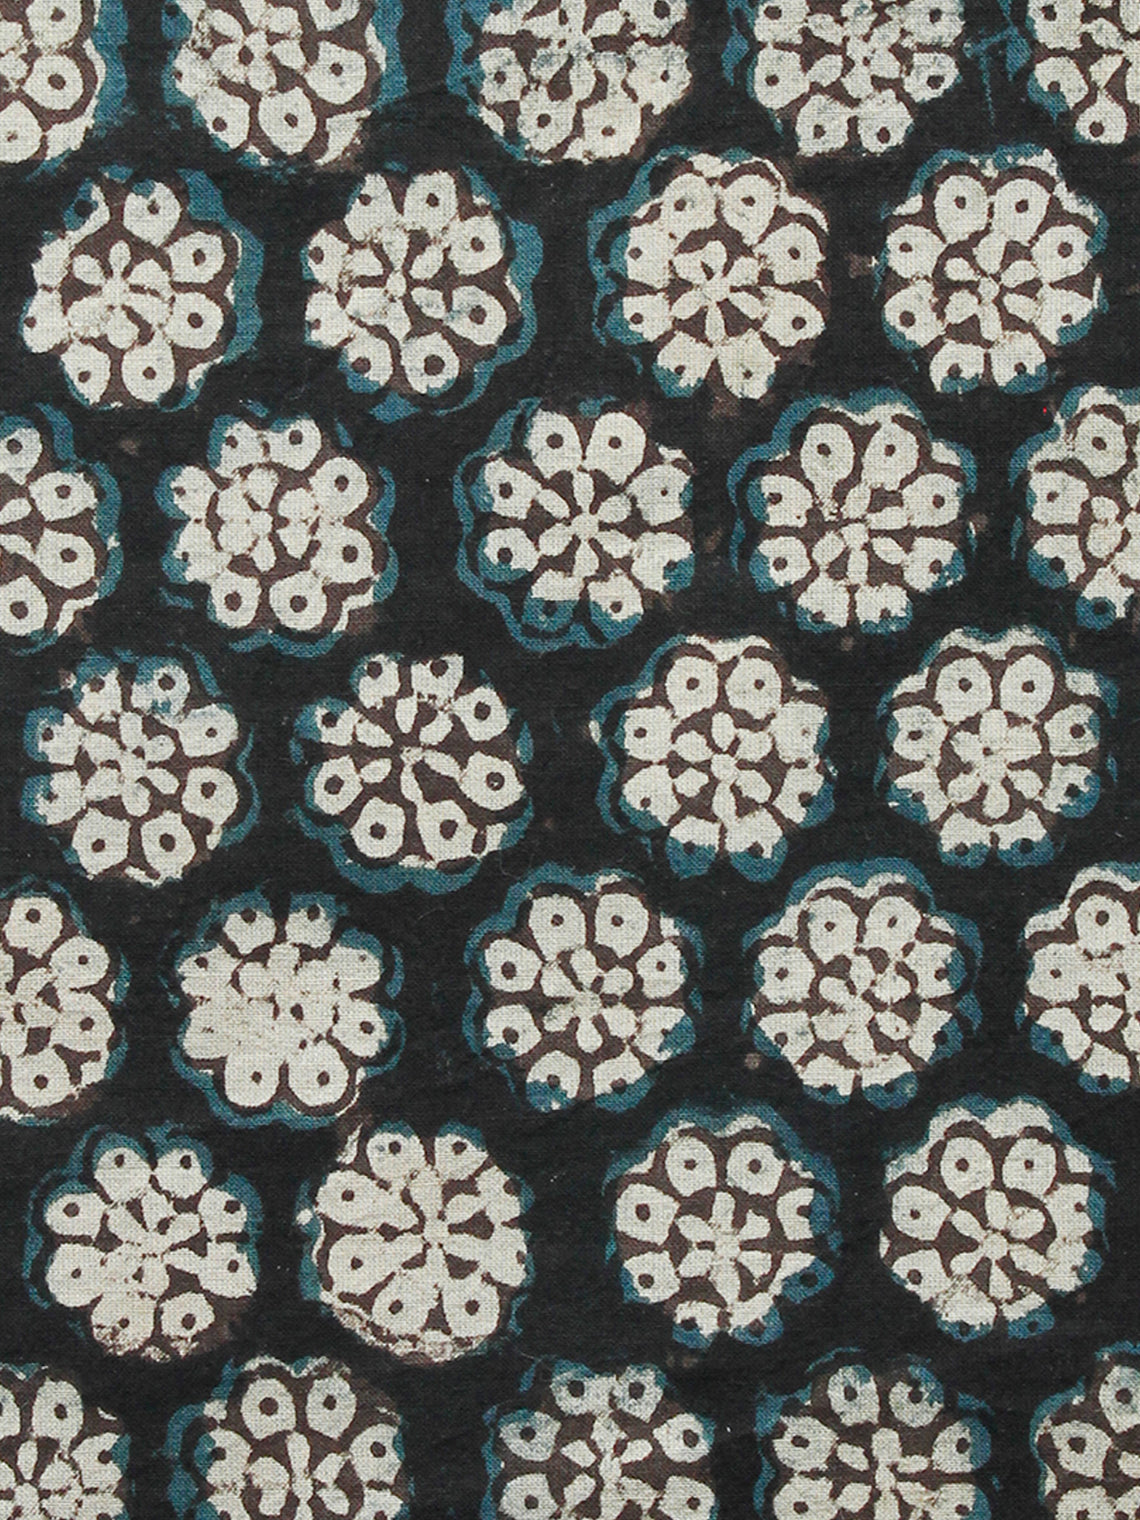 Black Brown Ivory Turquoise Hand Block Printed Cotton Fabric Per Meter - F001F1390